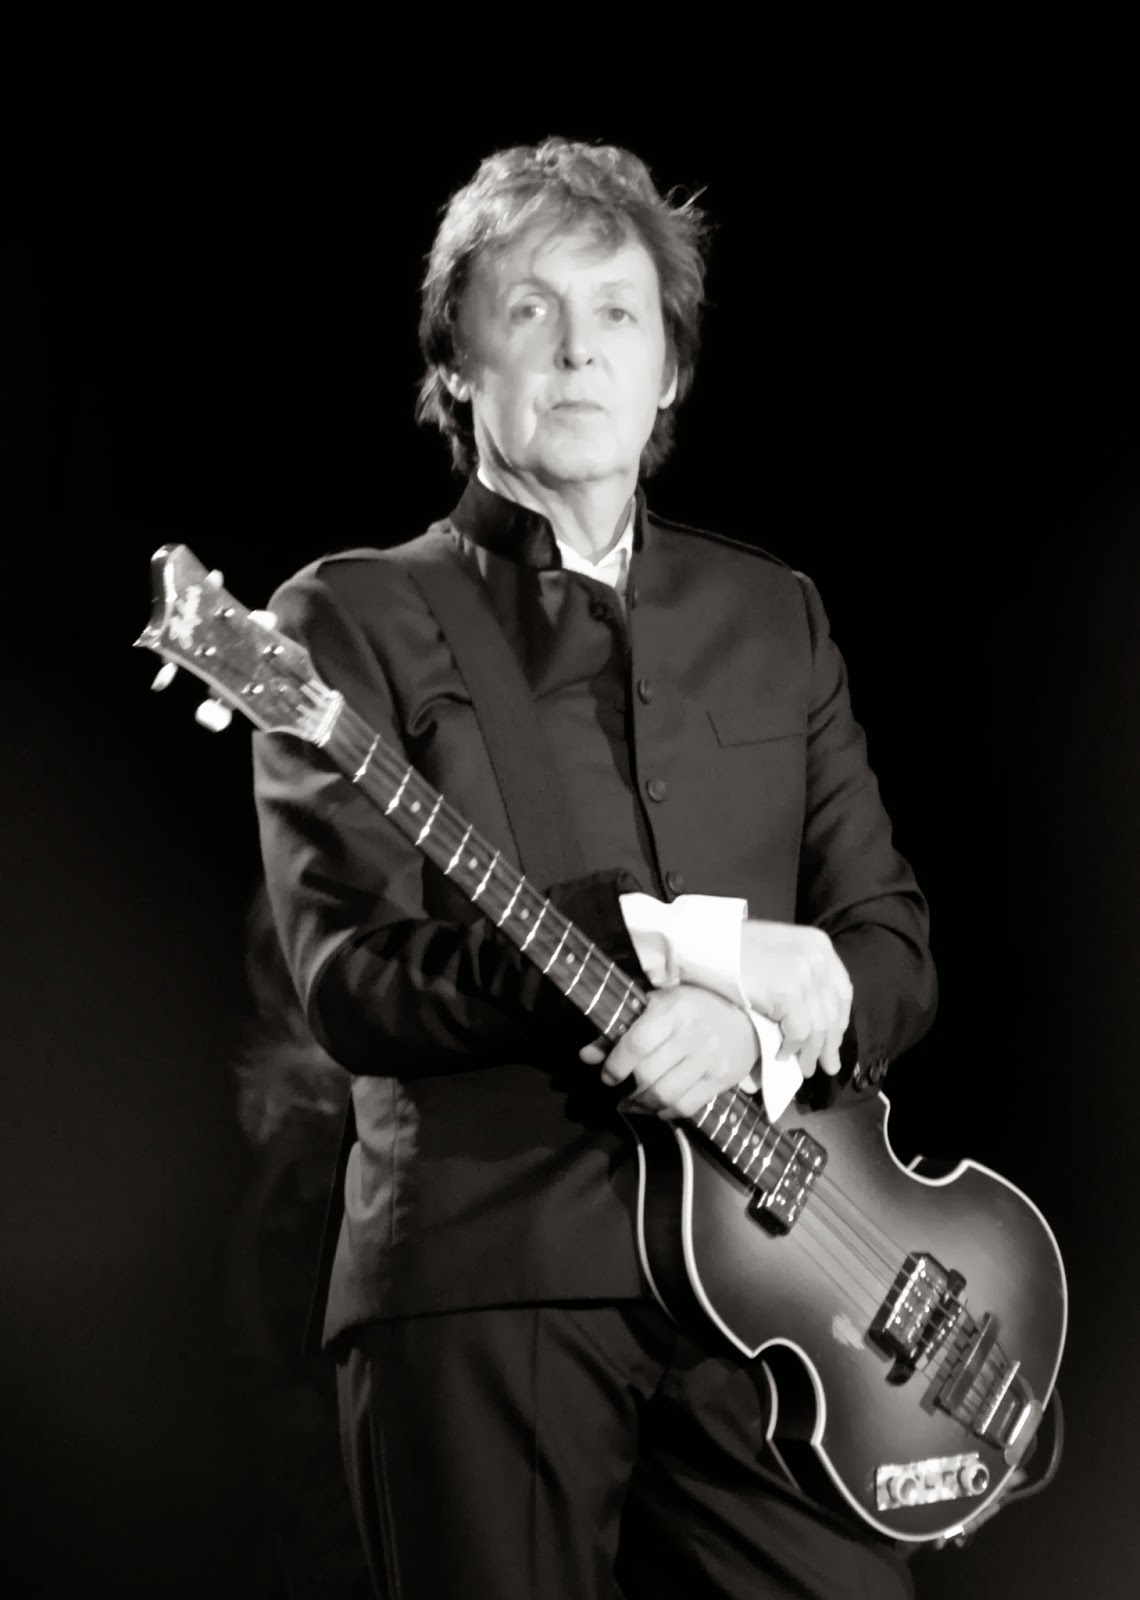 http://en.wikipedia.org/wiki/Paul_McCartney